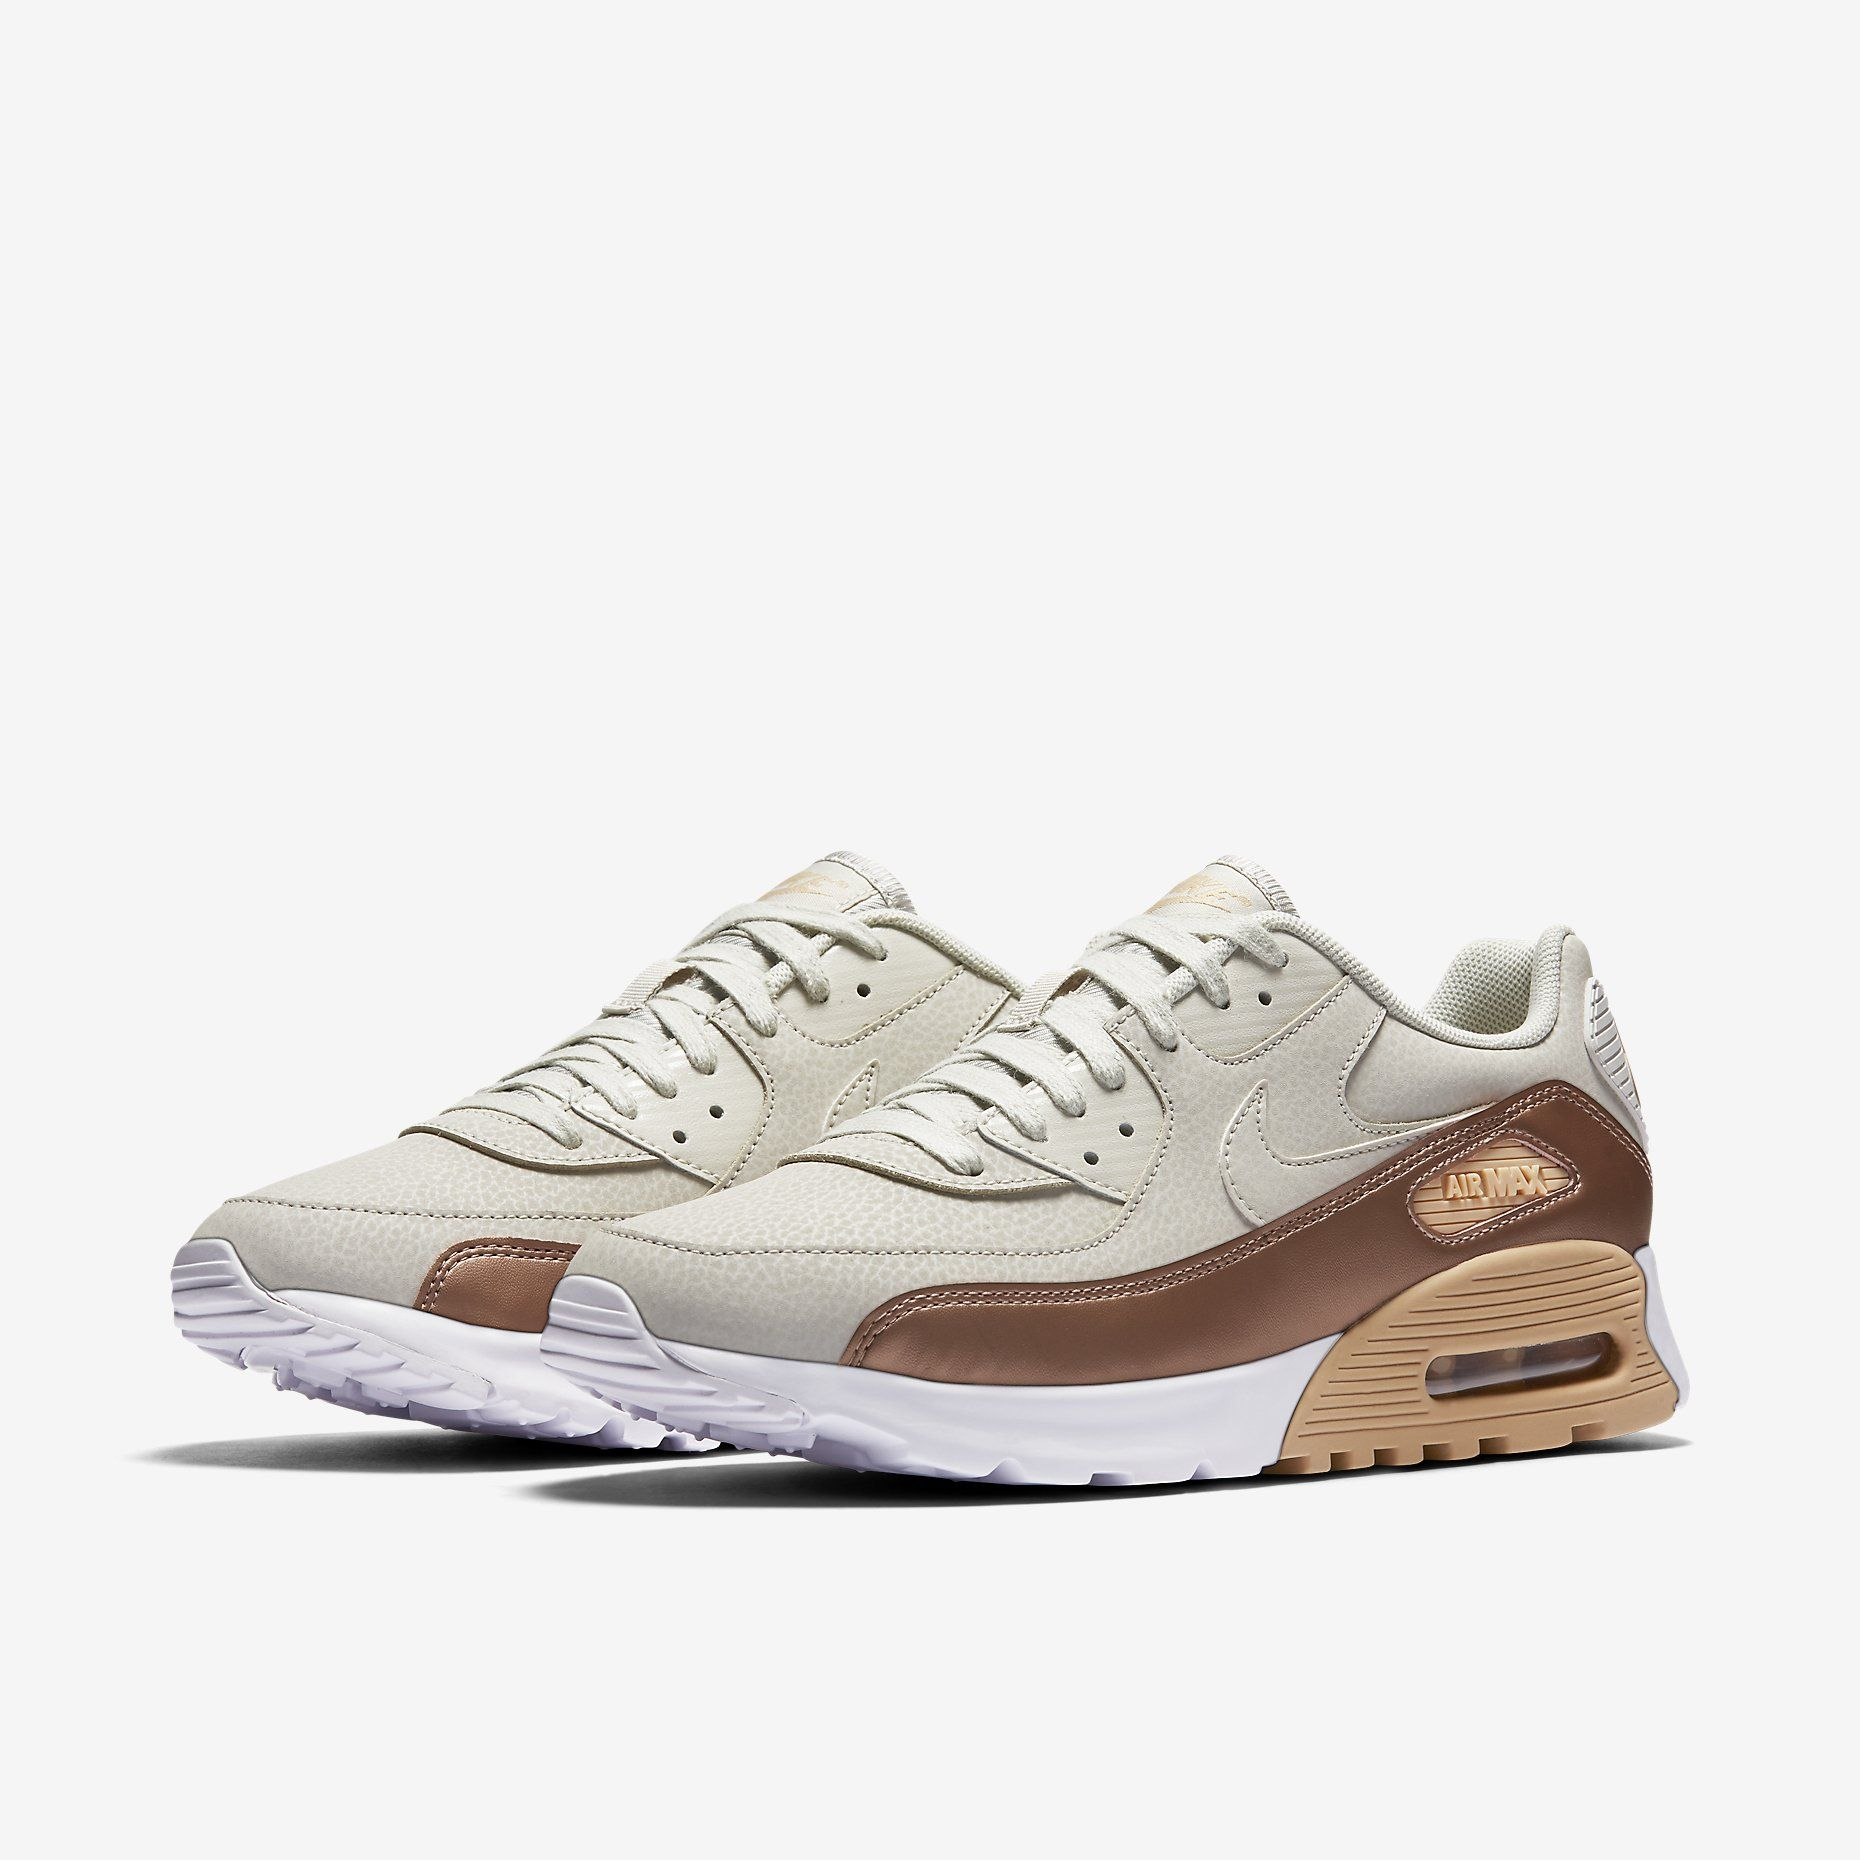 billig Nike Air Max 90 Premium Leather Sneaker Herren braun